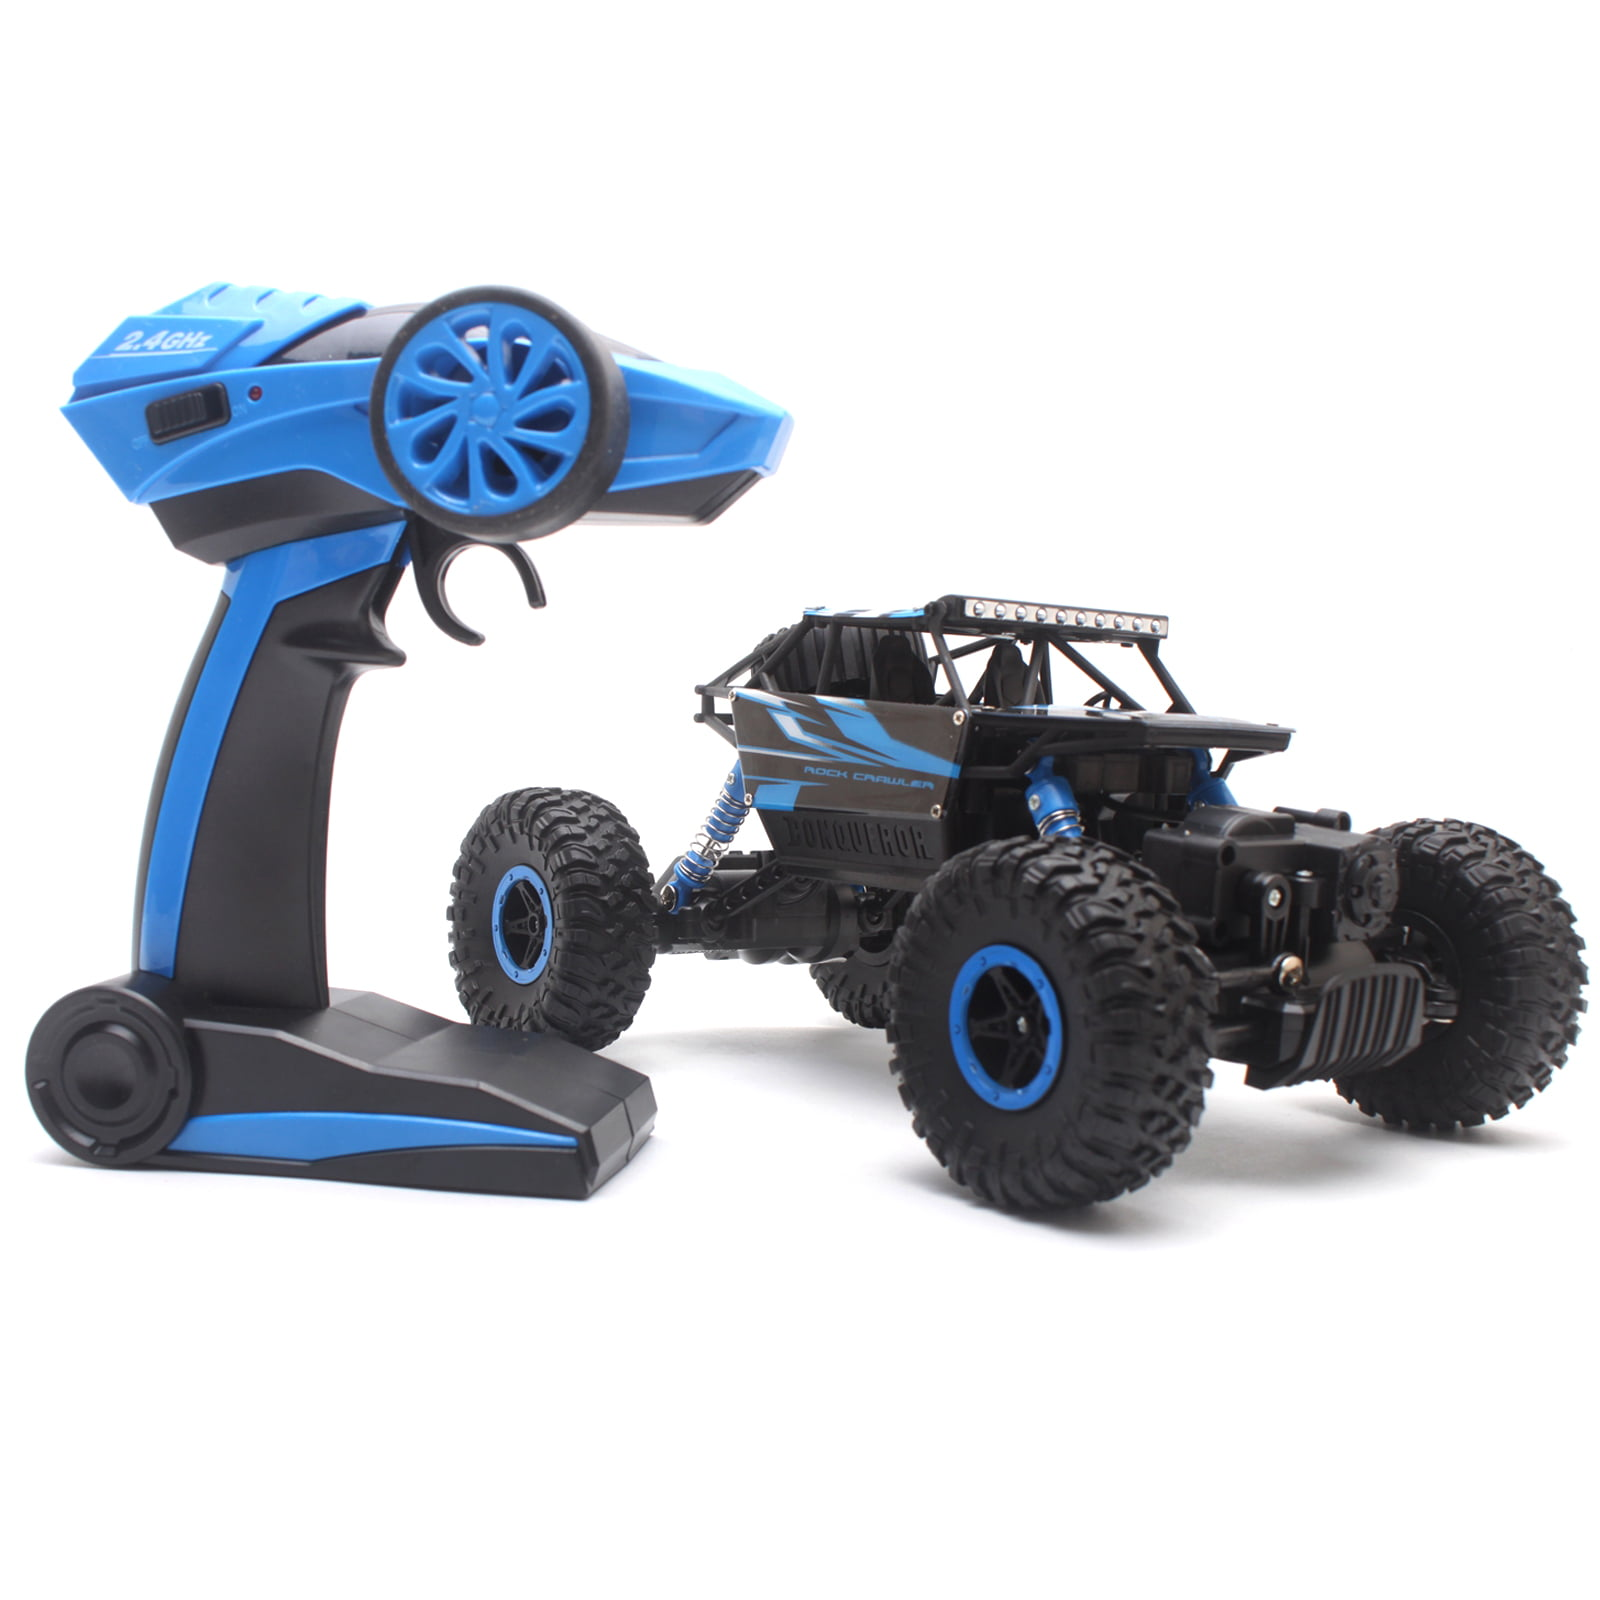 2.4GHz 4WD HB-P1801 1 18 Scale RC Car Crawler Off-road Vehicle RC Car Race Truck by Cheerwing